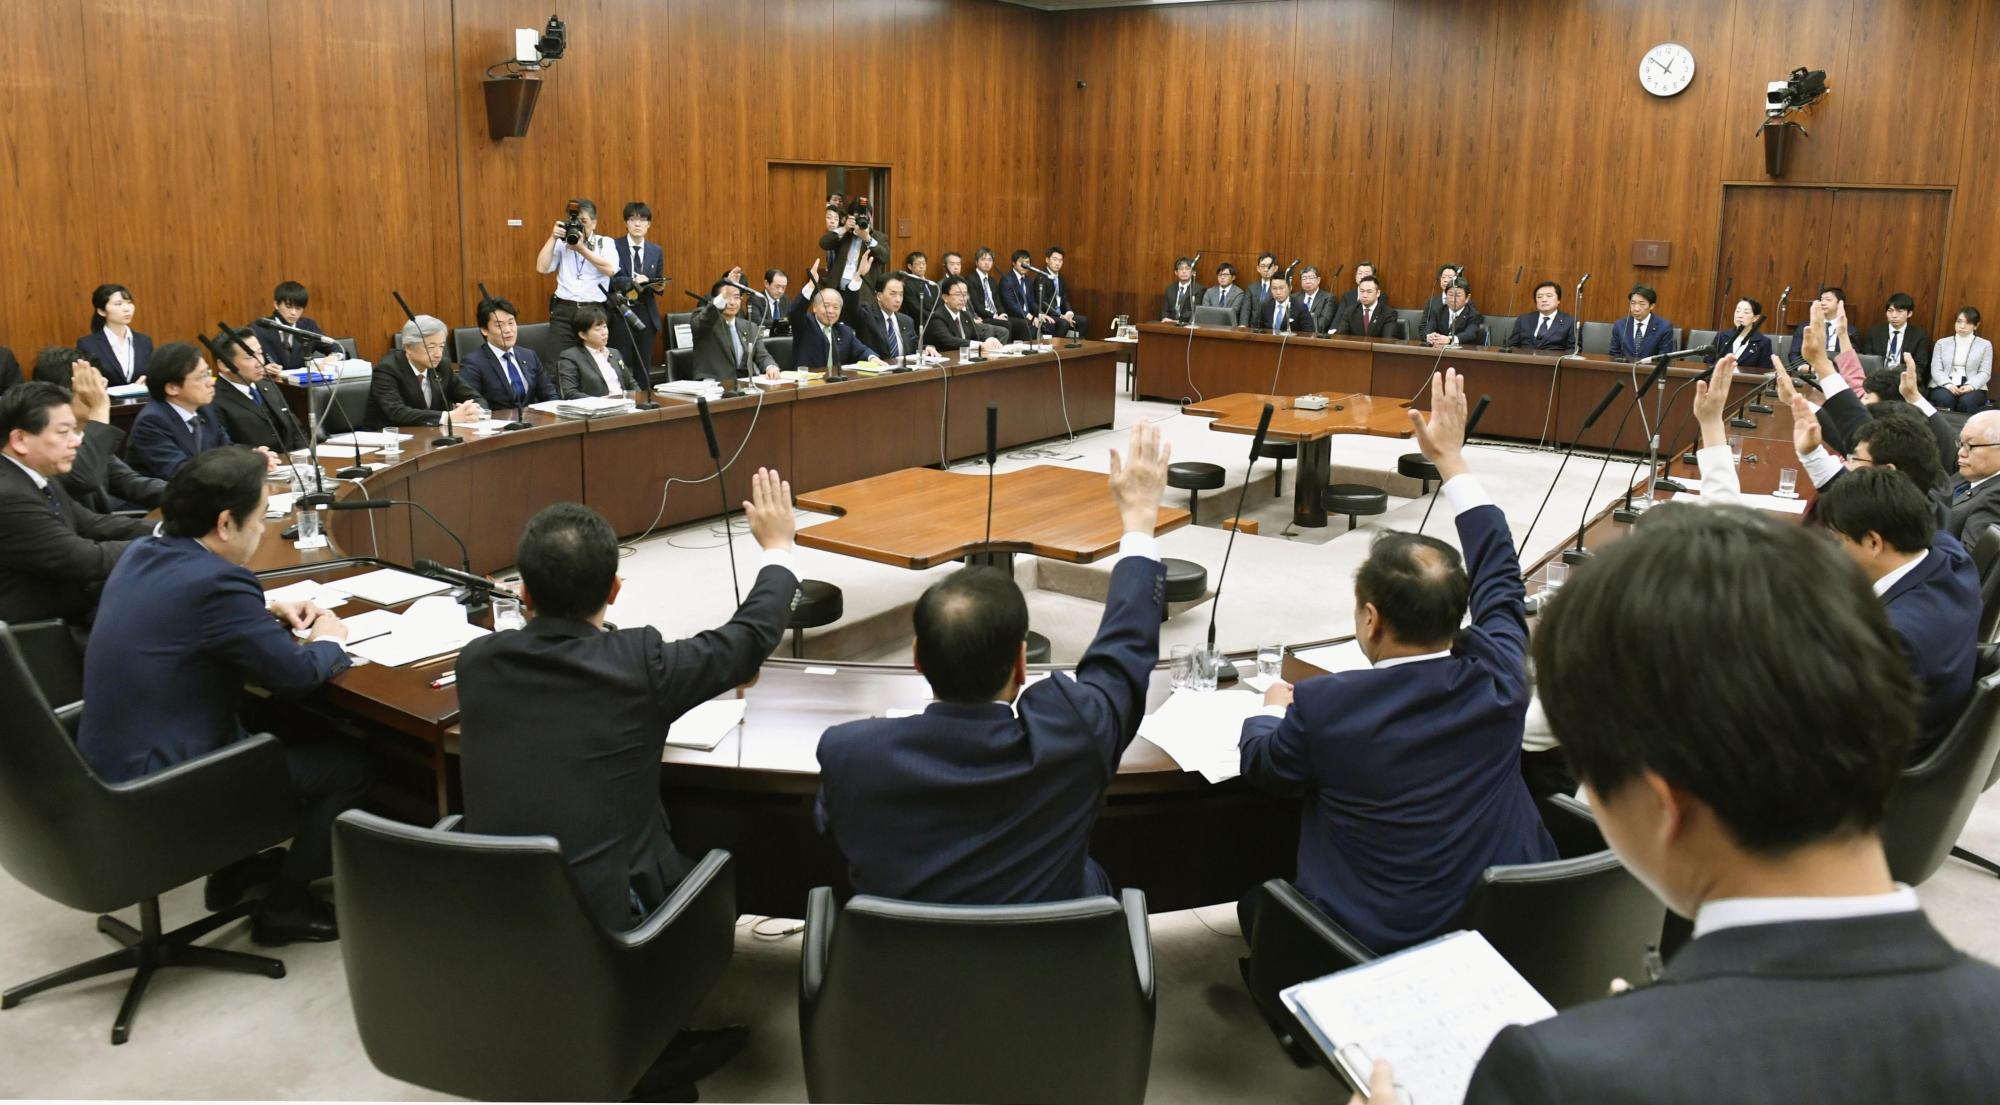 An Upper House committee OKs Japan's trade deal with the United States on Tuesday. The deal was approved at the Upper House plenary session Wednesday. | KYODO